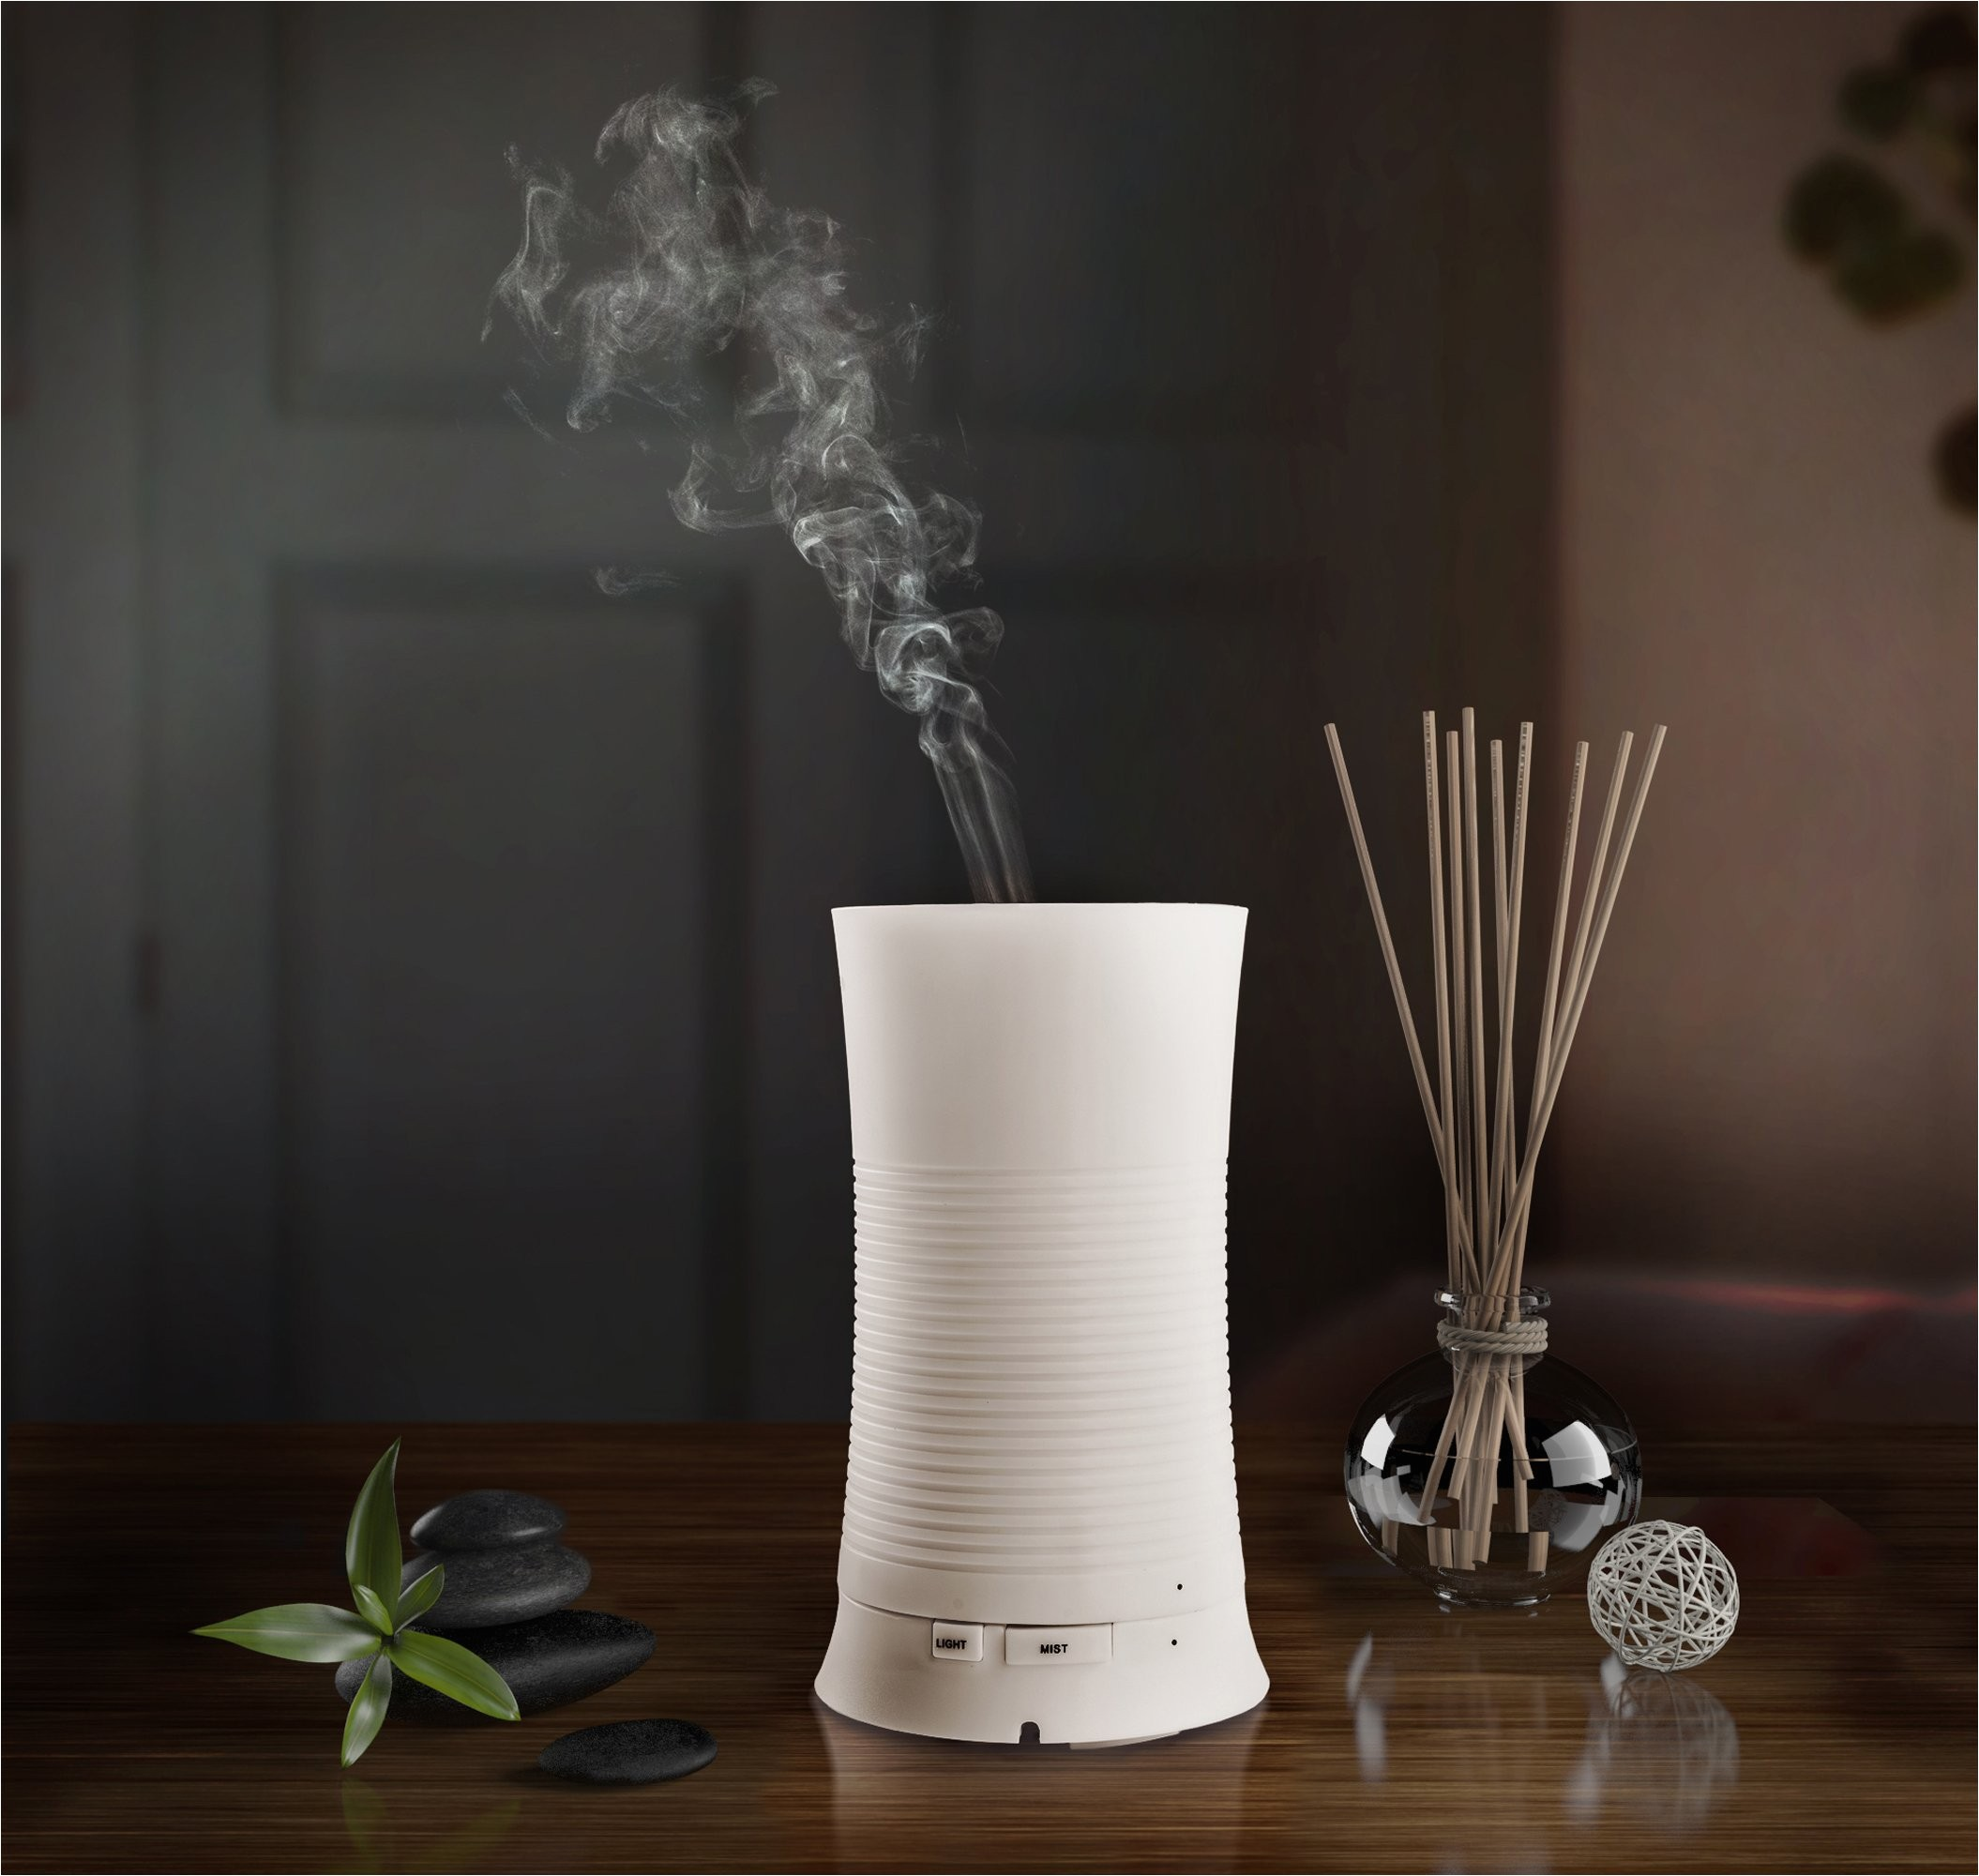 review of calily ultrasonic aromatherapy essential oil diffuser